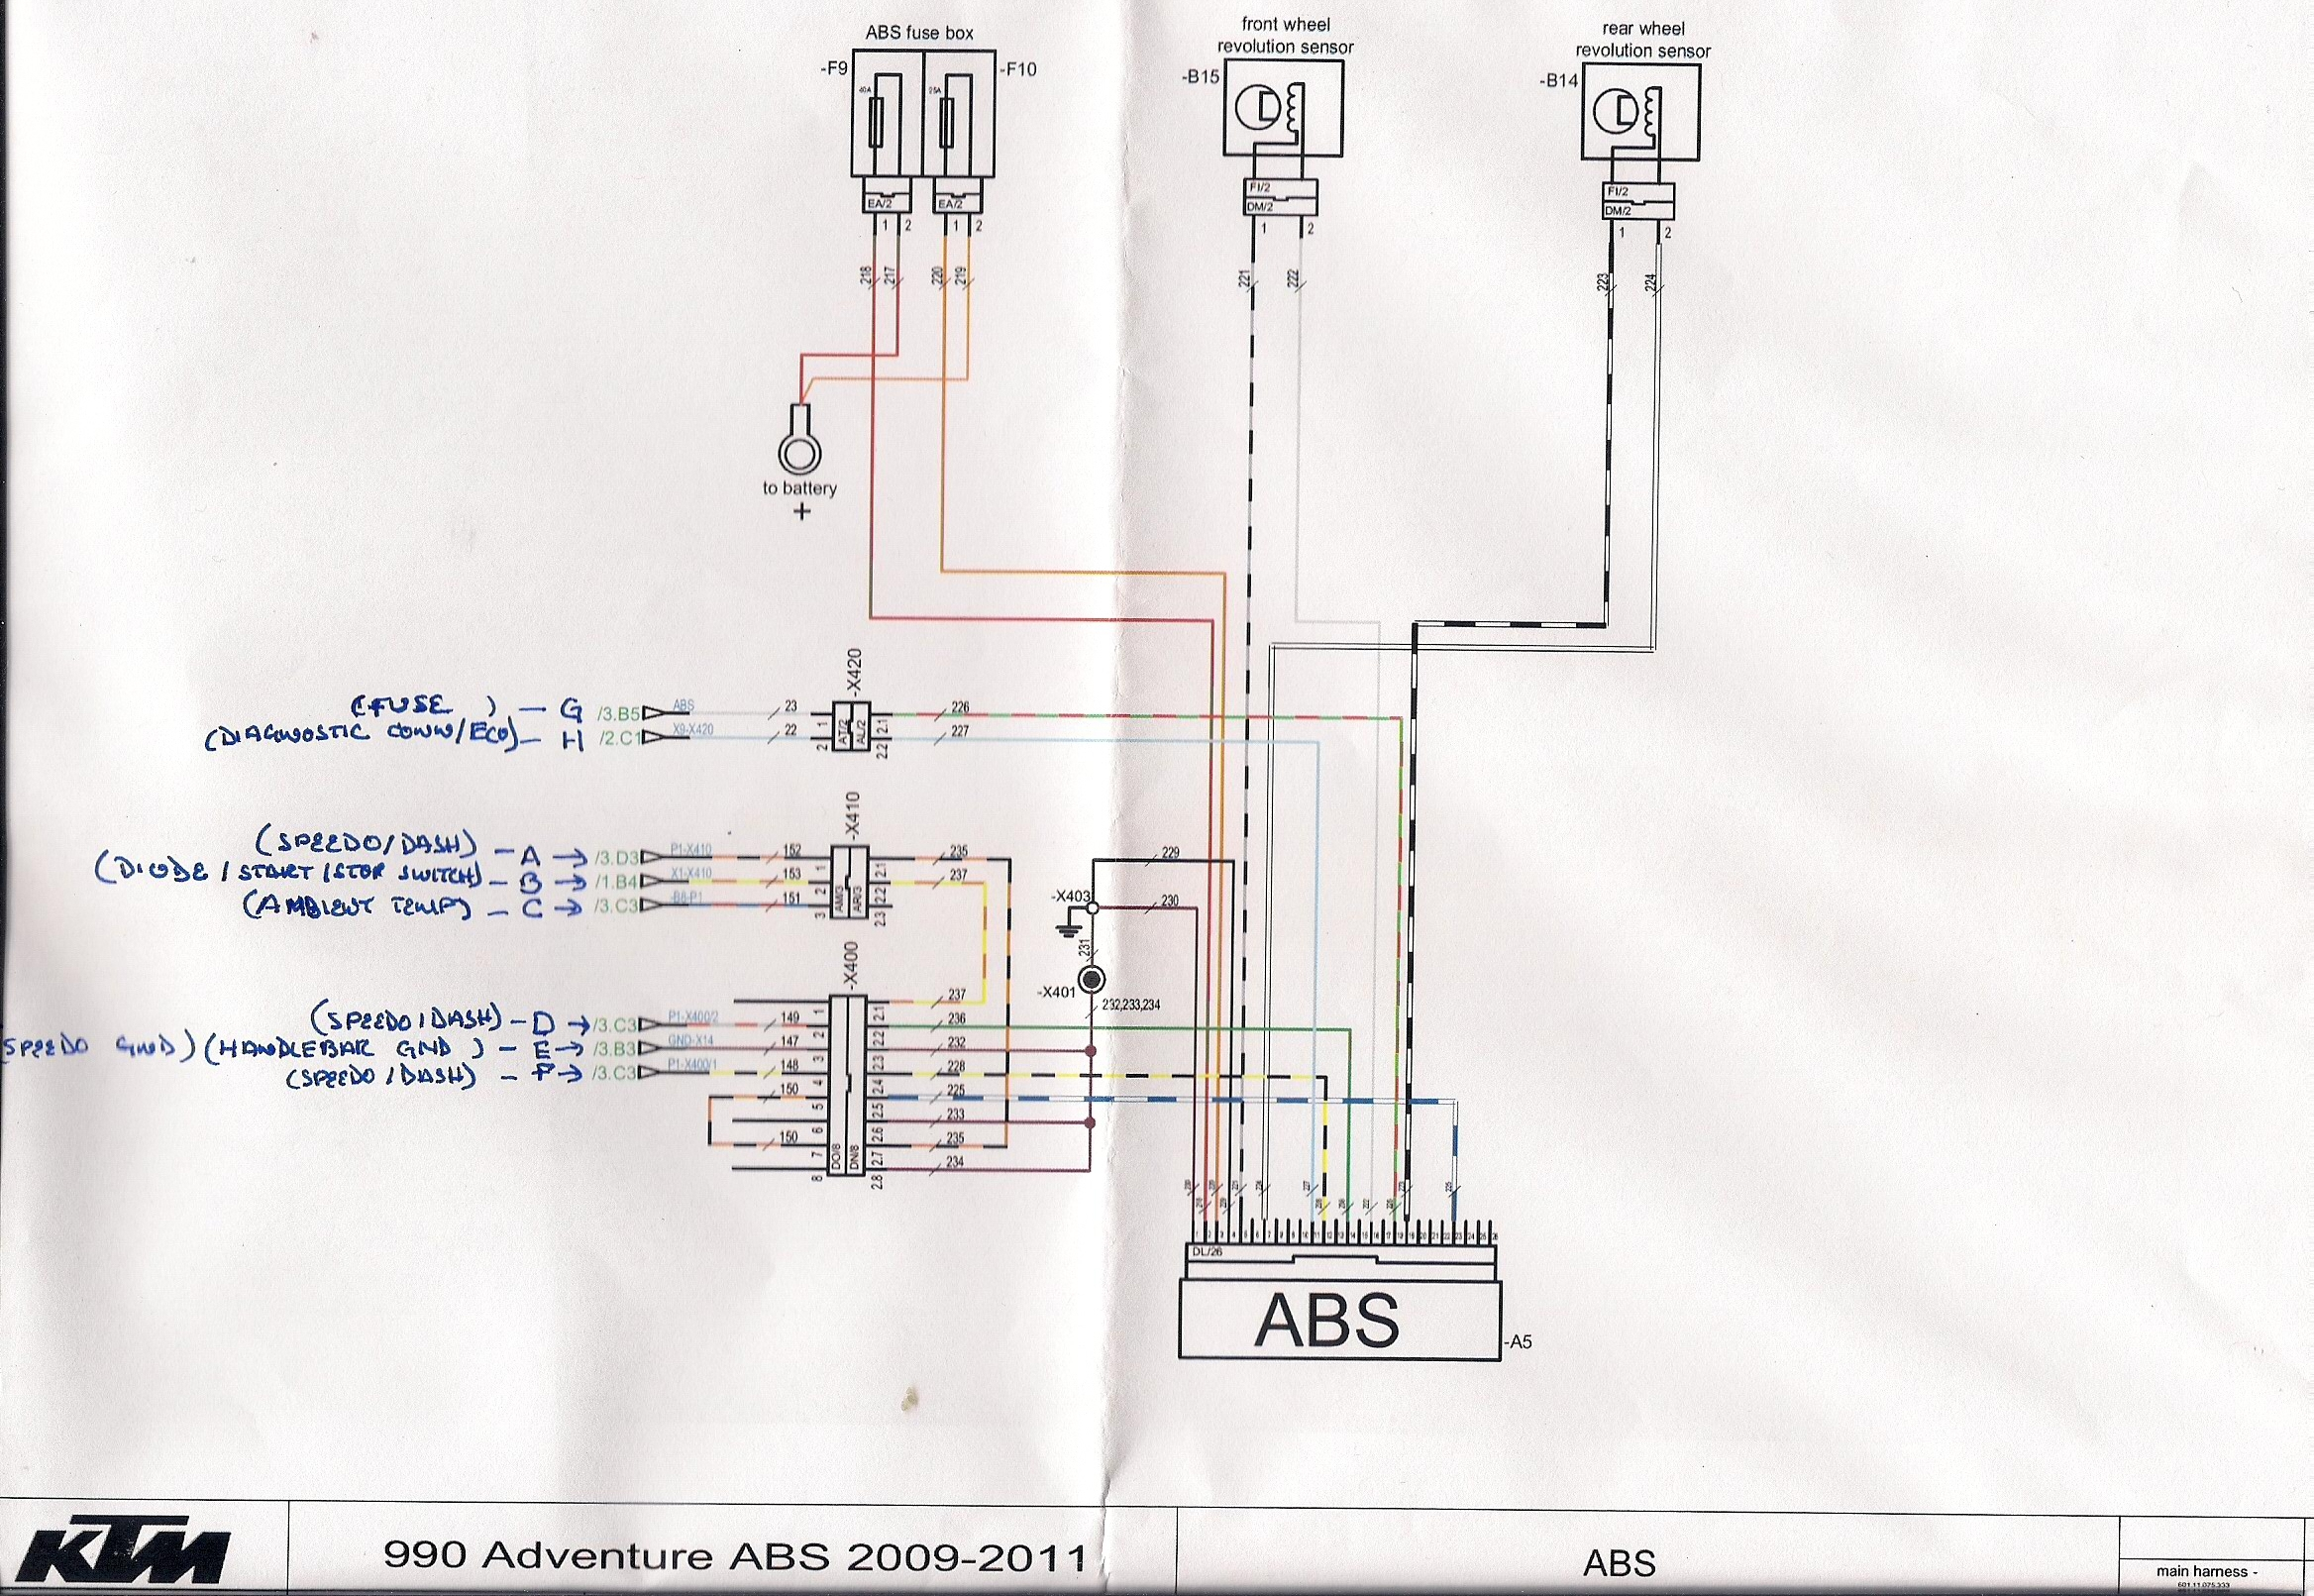 Tractor Wiring Yanmar Diagramsym1601d | Wiring Diagram on farmall 450 wiring diagram, farmall 706 diesel tractor diagram, ih 354 tractor, ih tractor logo, ih tractor oil pump, farmall h parts diagram, ih tractor speaker, international 244 tractor diagram, farmall a wiring diagram, farmall 12 volt wiring diagram, ih tractor parts, ih tractor power steering, ih 706 wiring-diagram, two wire alternator wiring diagram, ih tractor manuals, ih tractor forum, farmall h electrical wiring diagram, 354 international tractor diagram, ih tractor fuel pump, ih 244 tractor,